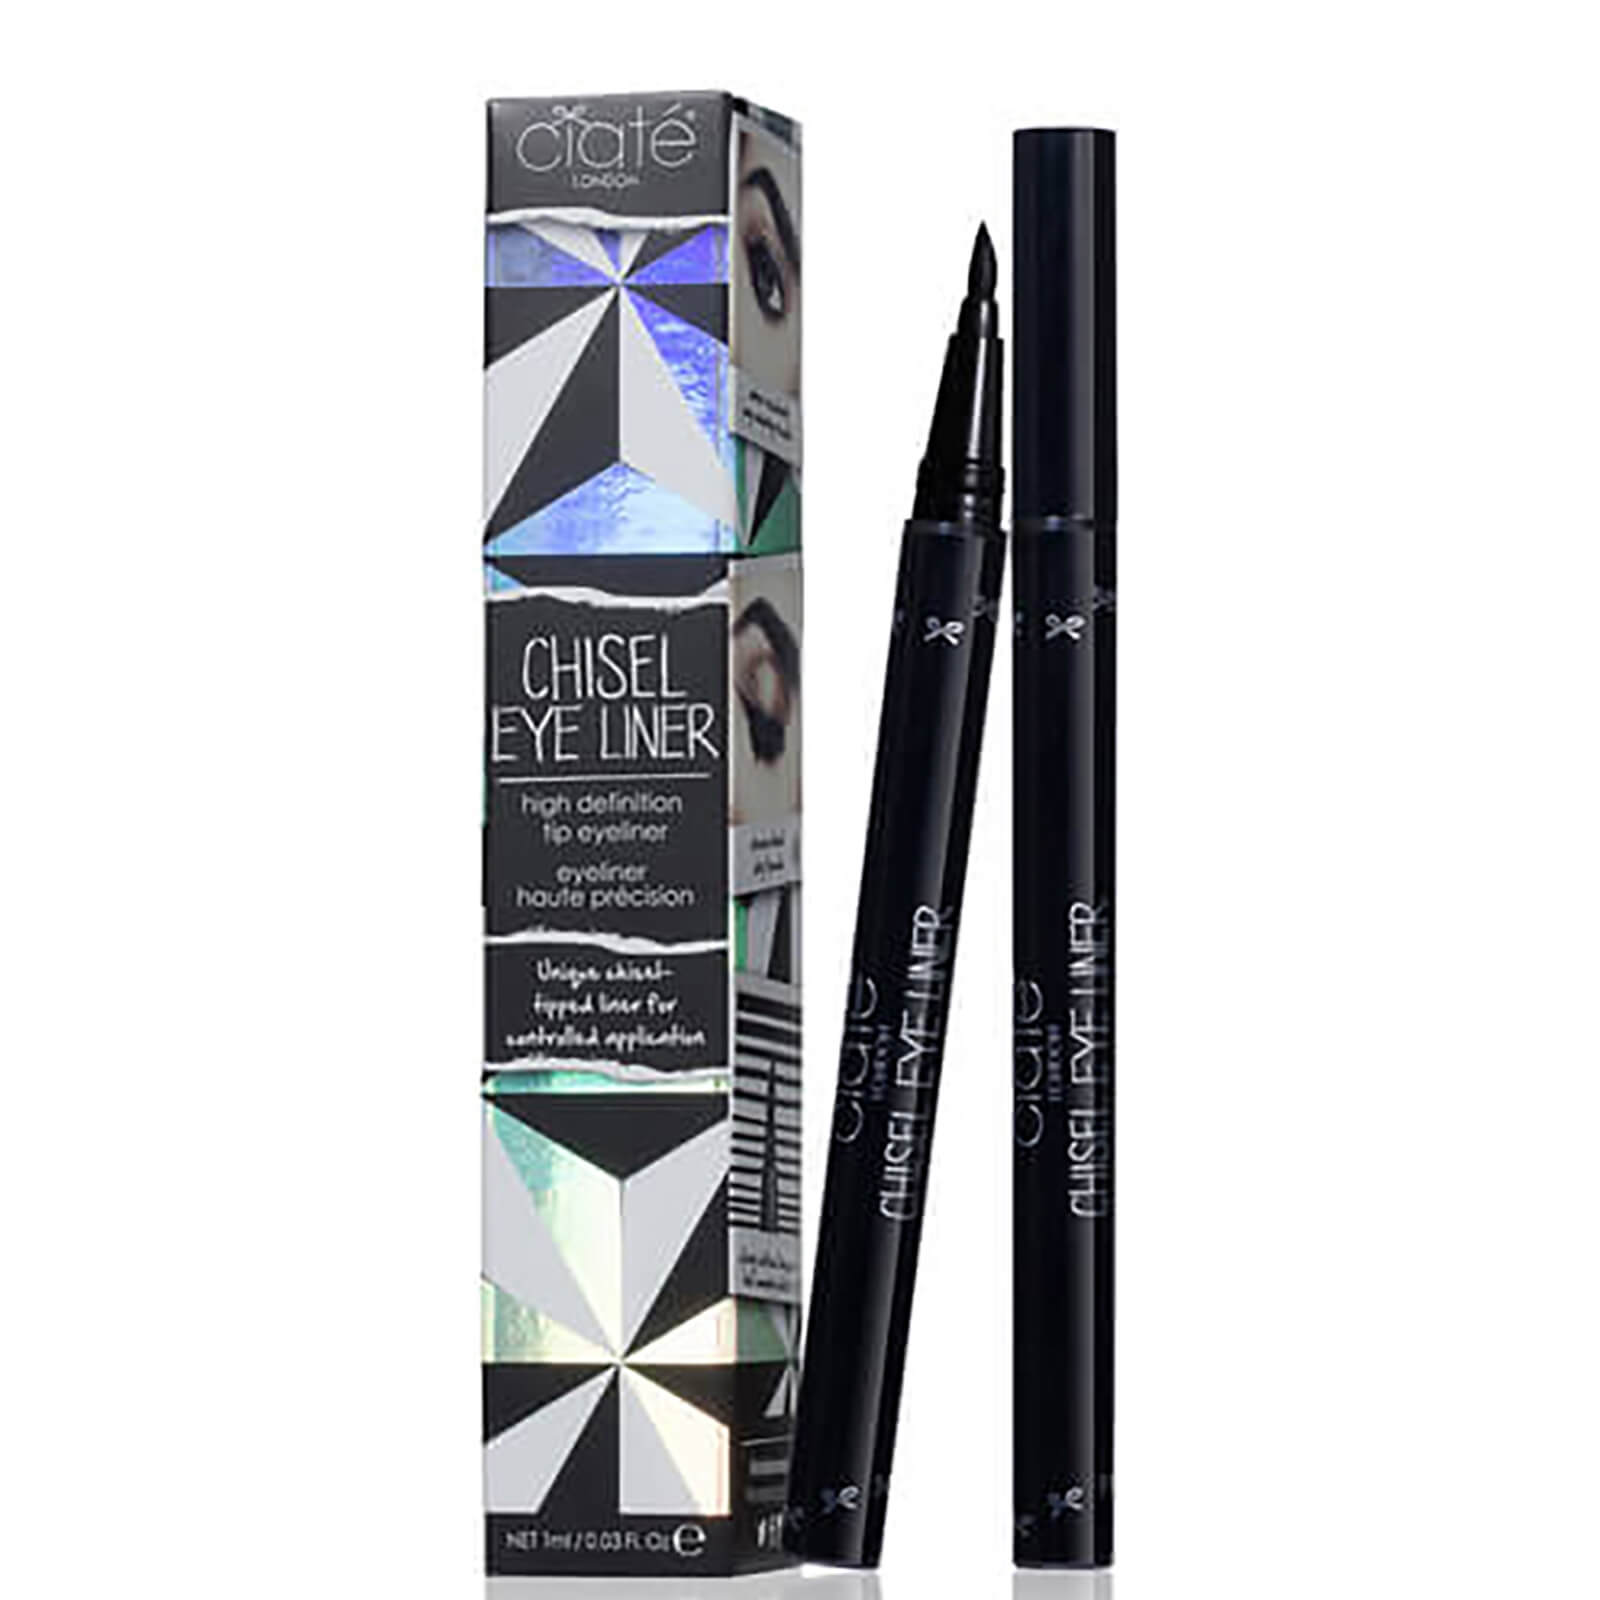 65c6122ac91 Ciaté London Chisel Eye Liner - Black